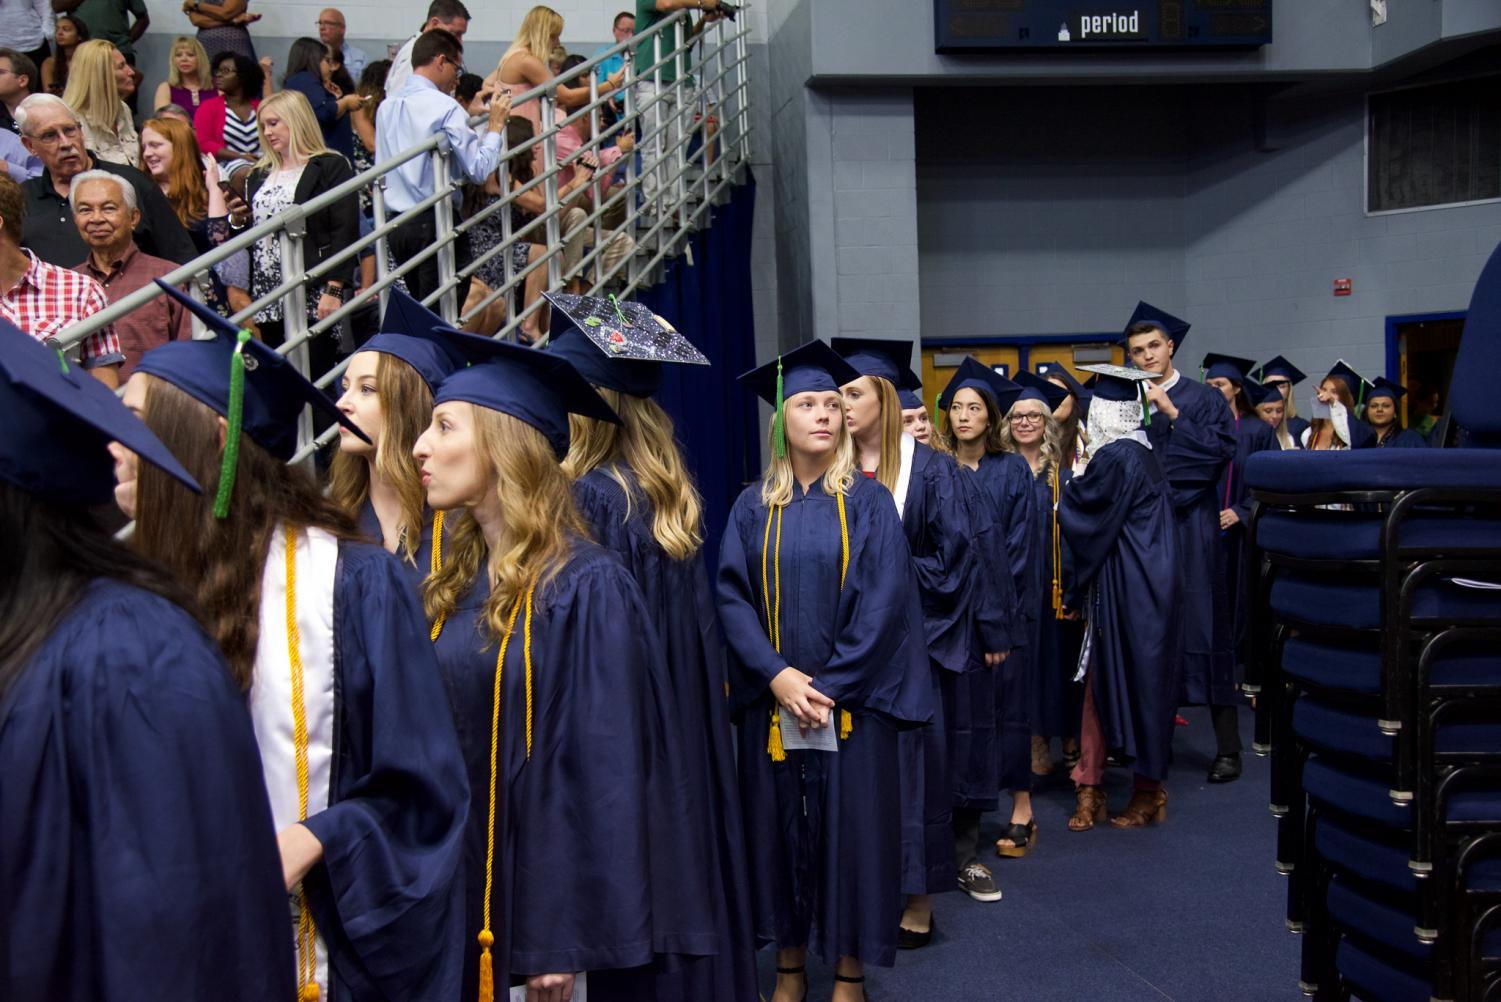 Graduates+walking+out+to+begin+the+ceremony.